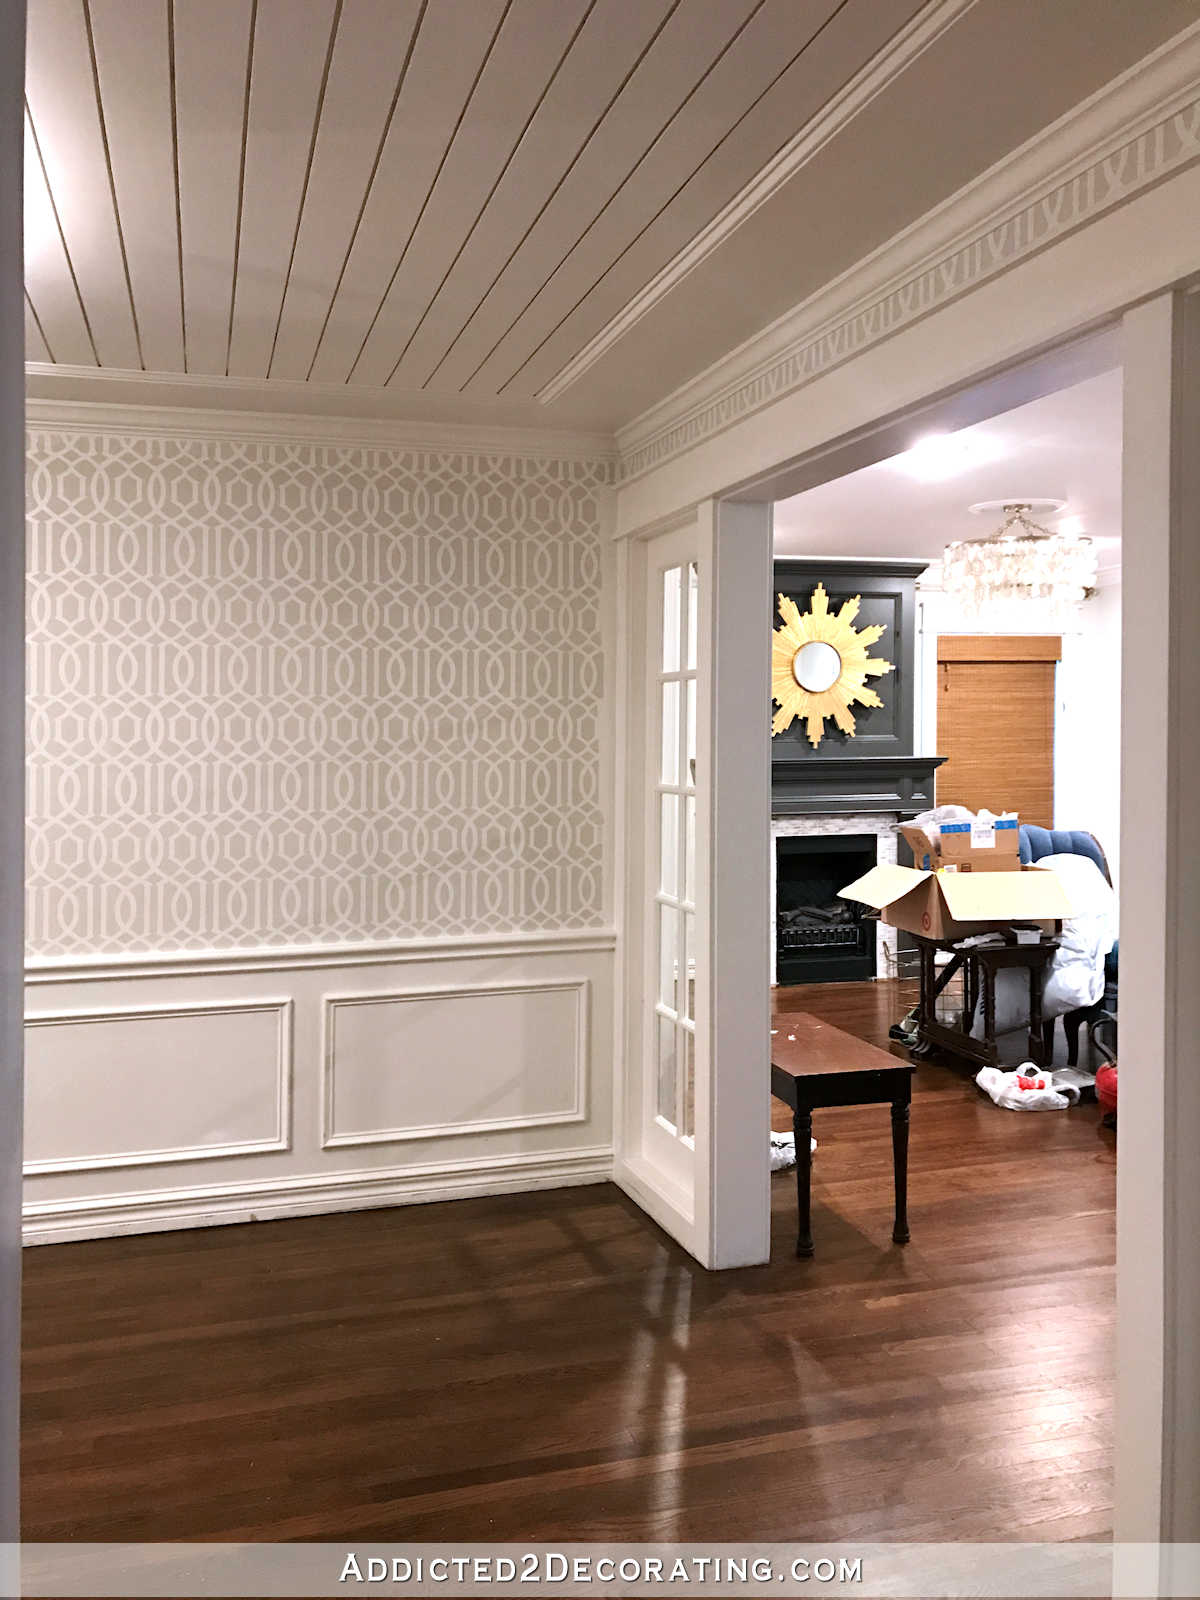 stenciled trellis design on walls in music room - 10